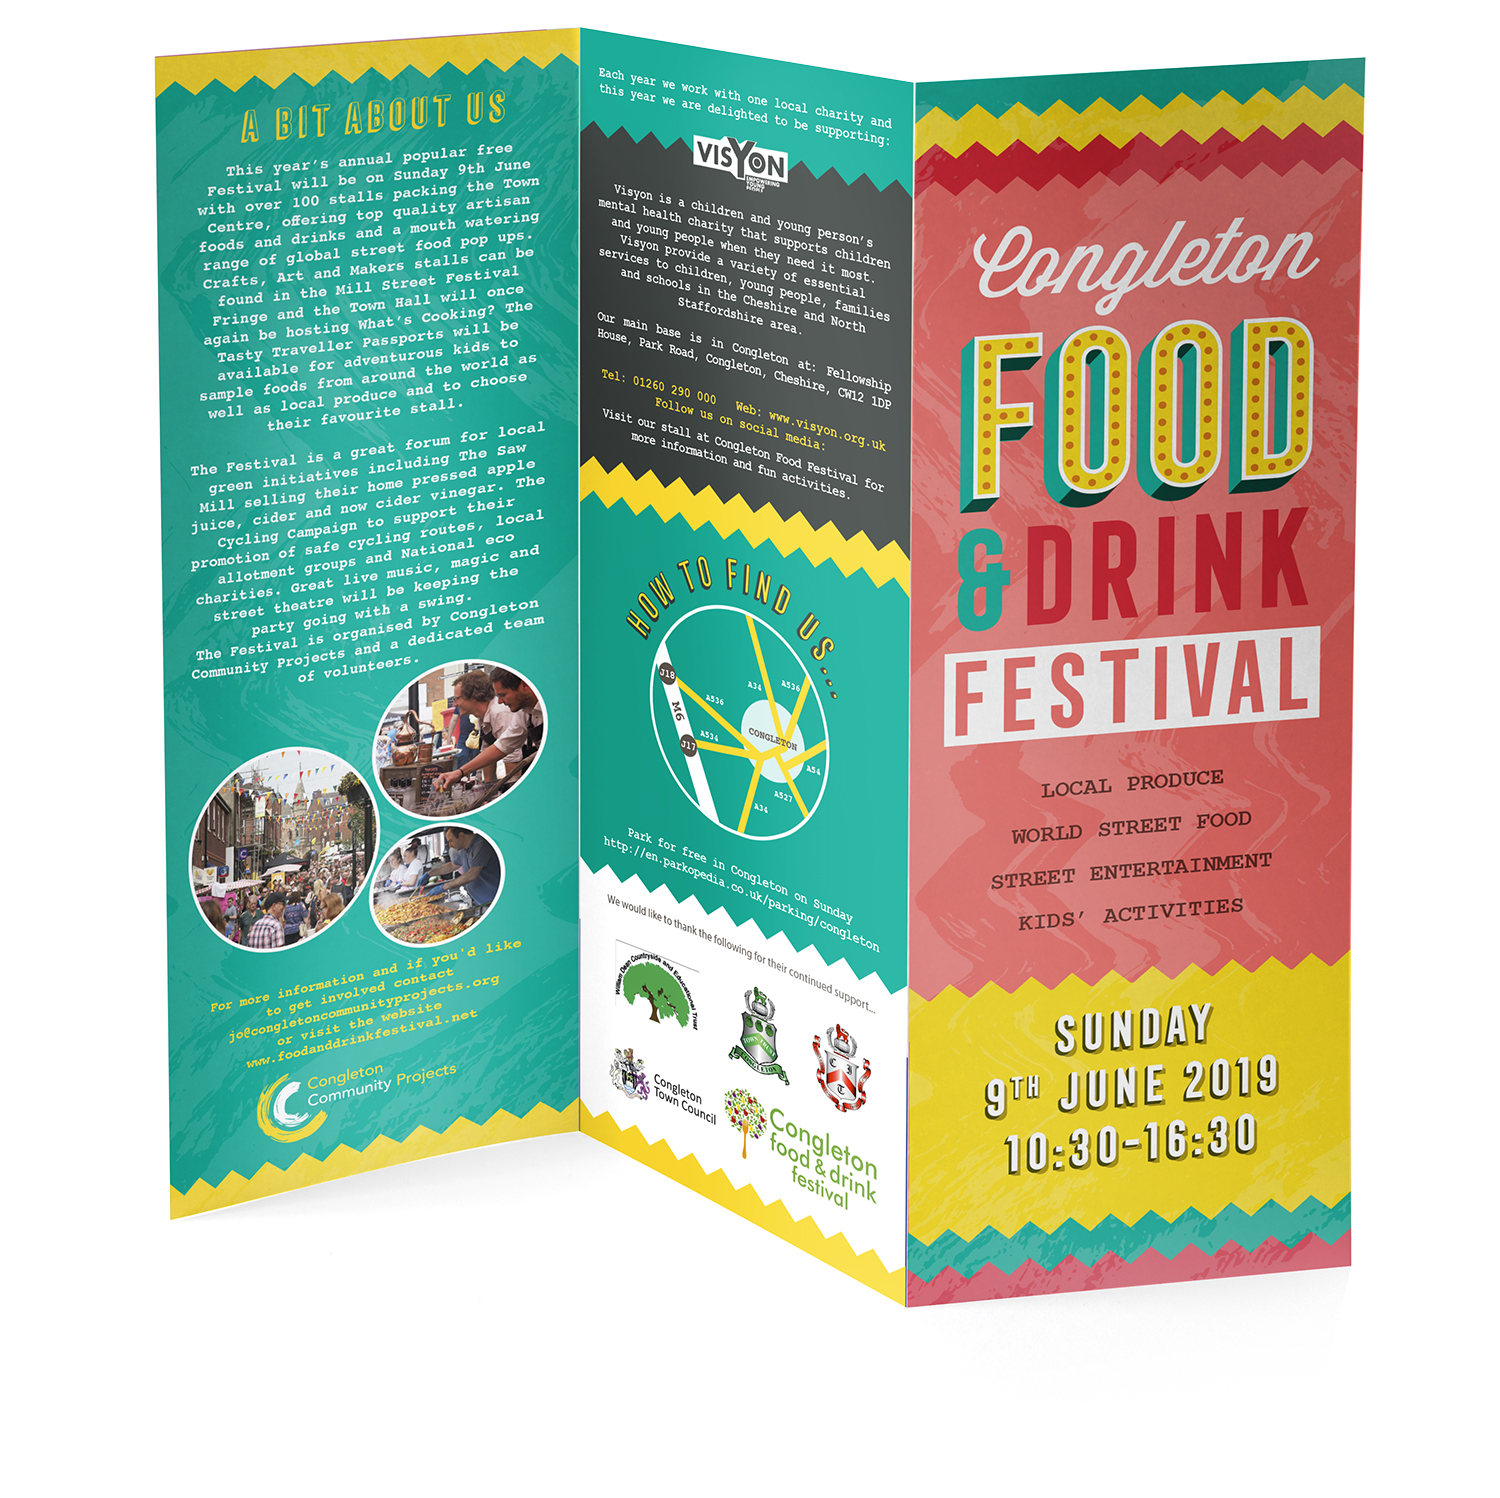 Congo Food And Drink Flyer.jpg